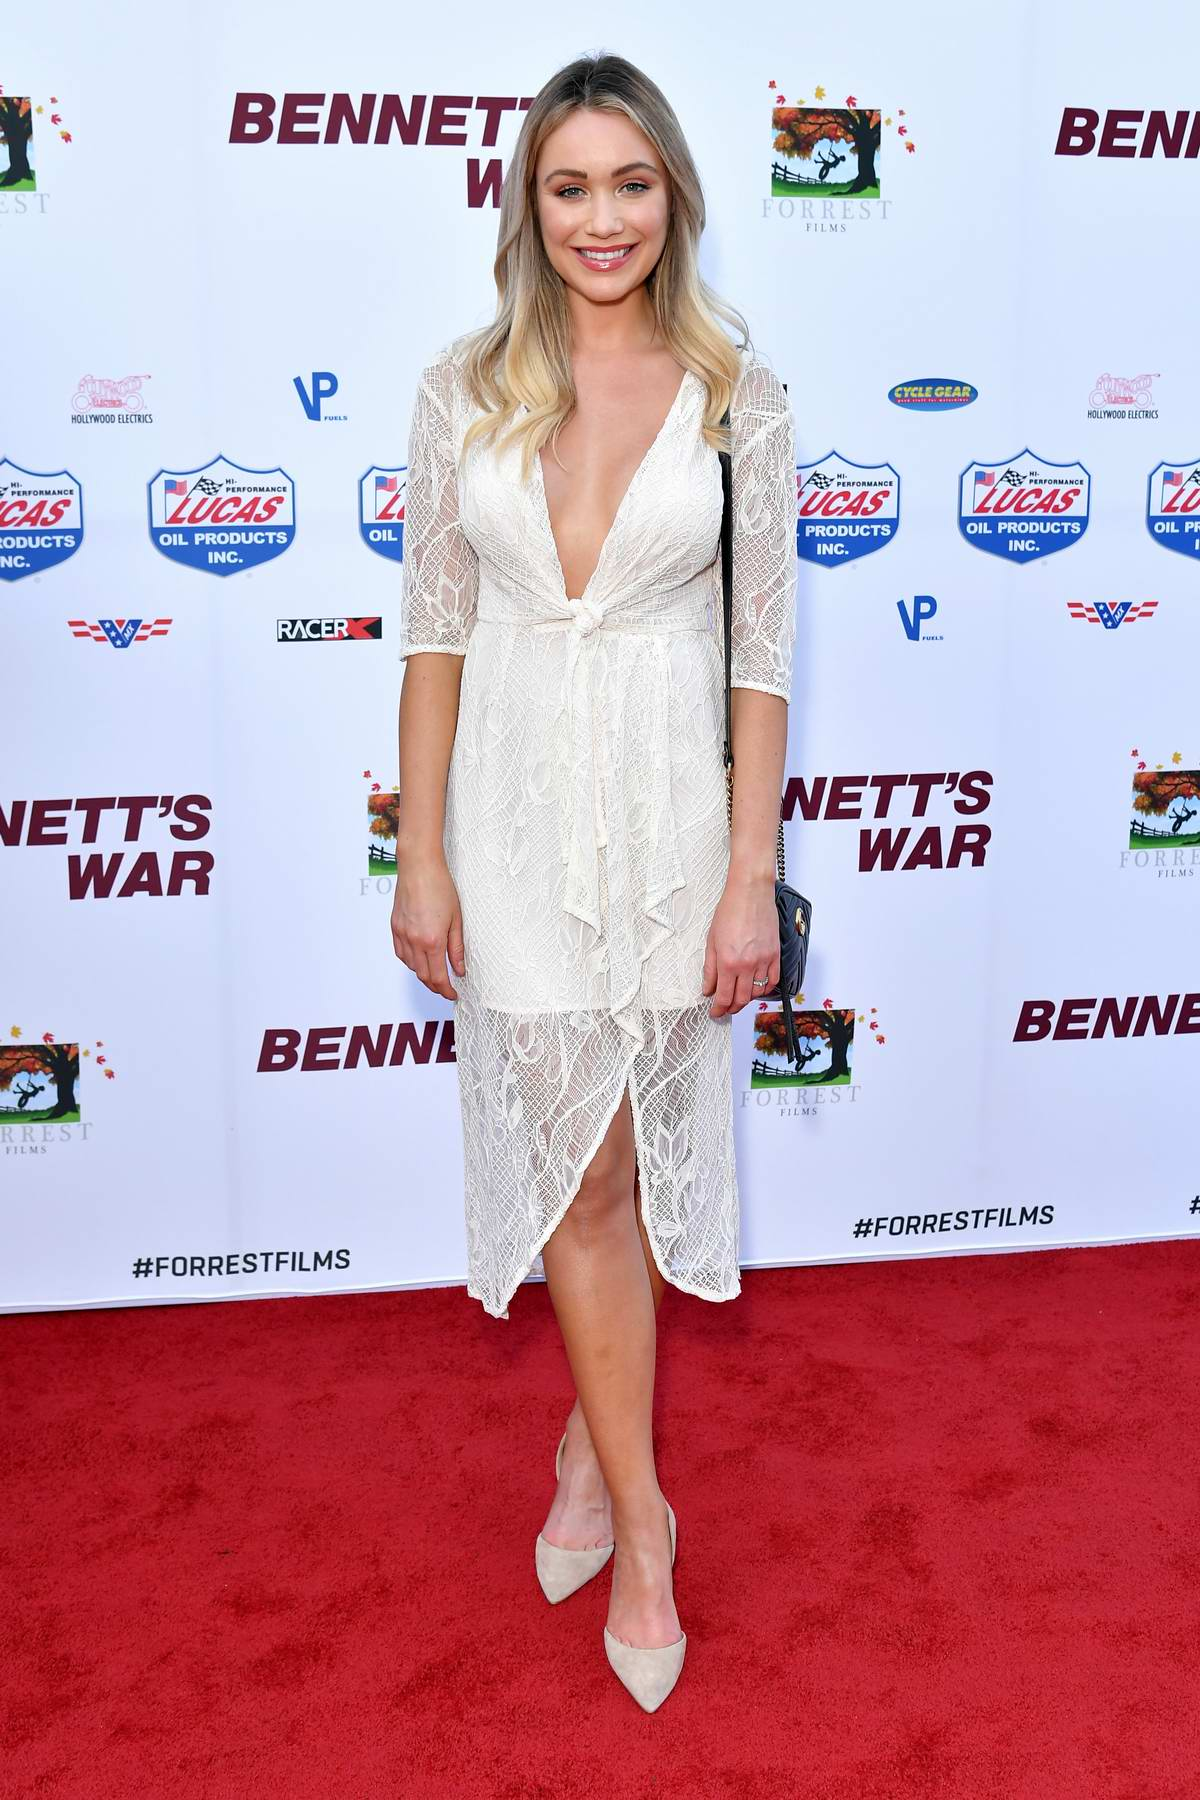 Katrina Bowden attends the LA Premiere of 'Bennett's War' at Warner Bros Studios in Burbank, California